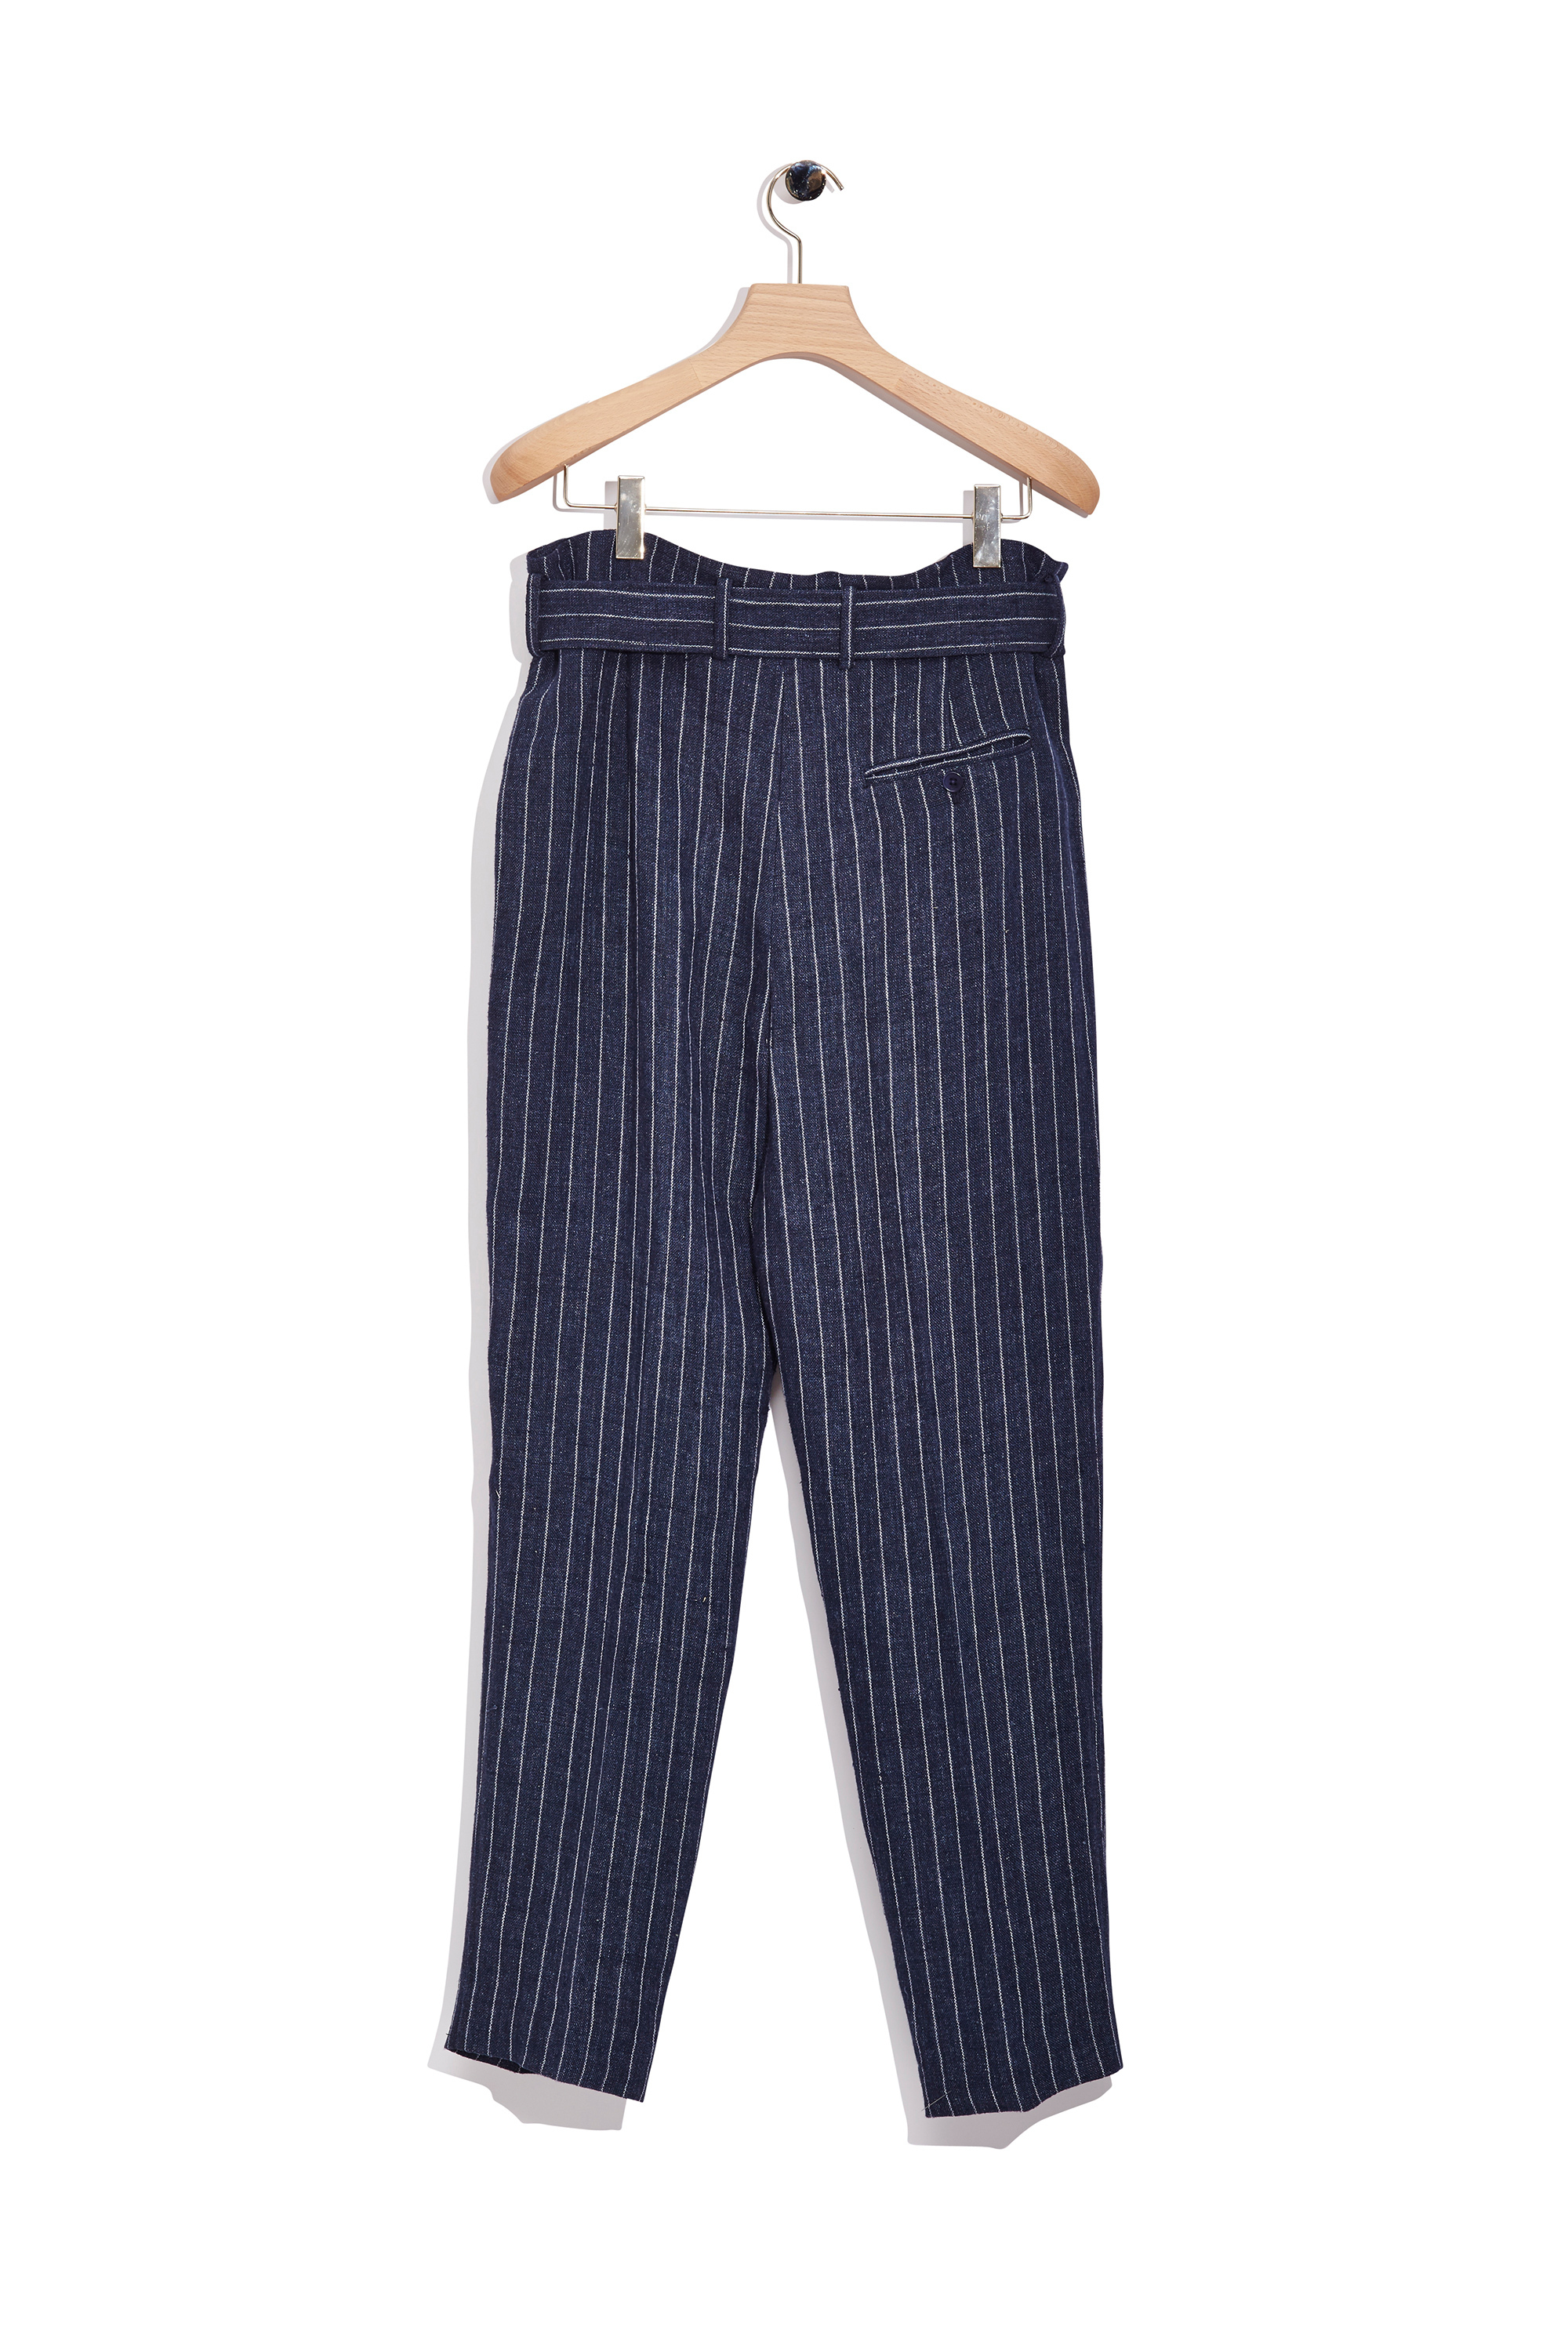 3.1 phillip lim Belted Pleated Trouser in Blue for Men